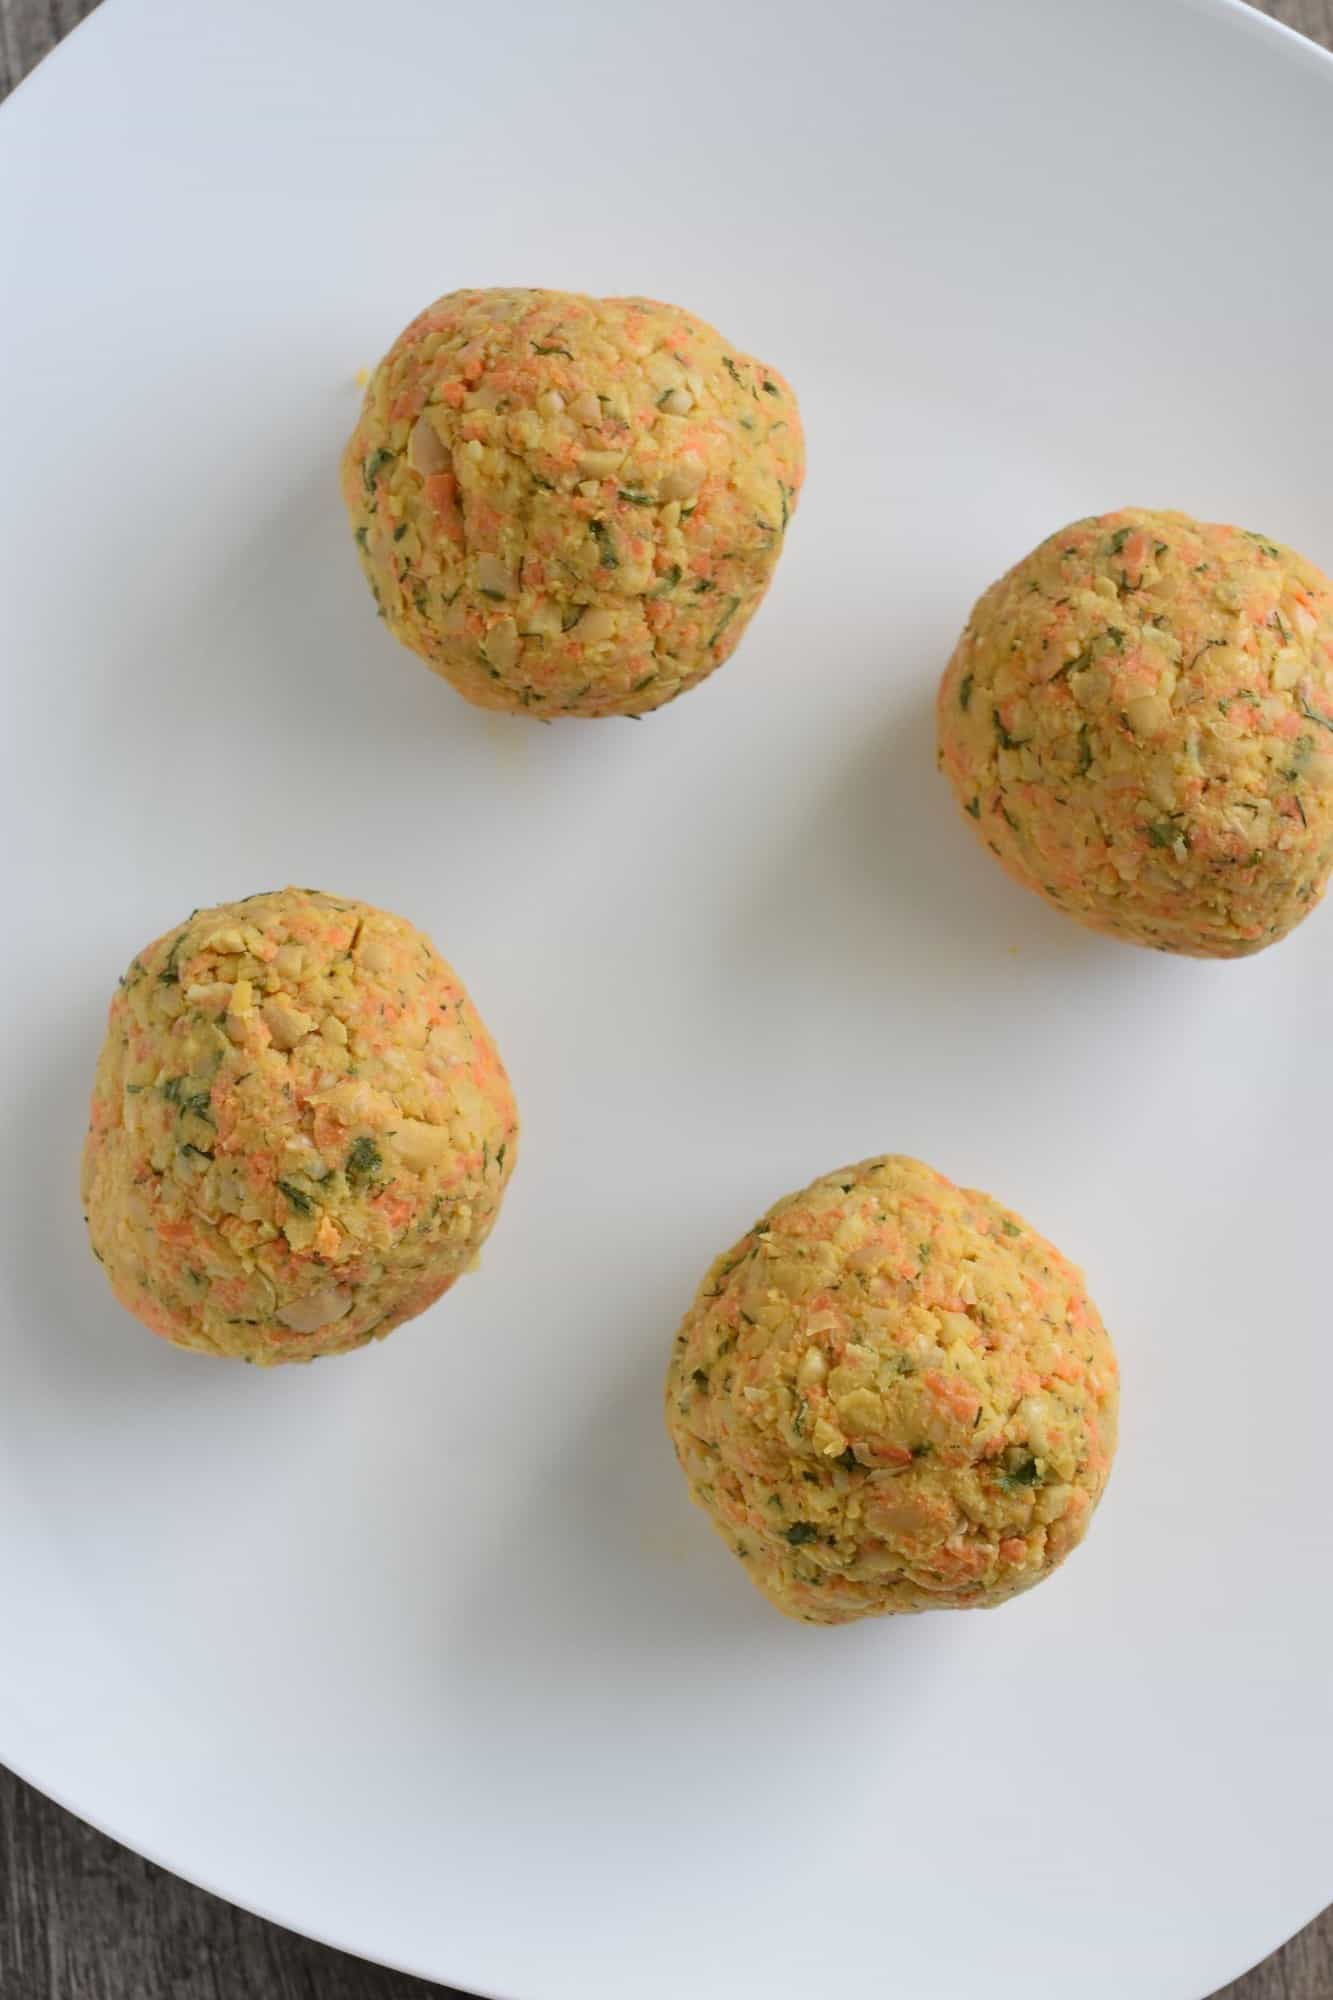 chickpea mixture formed into 4 balls of equal size